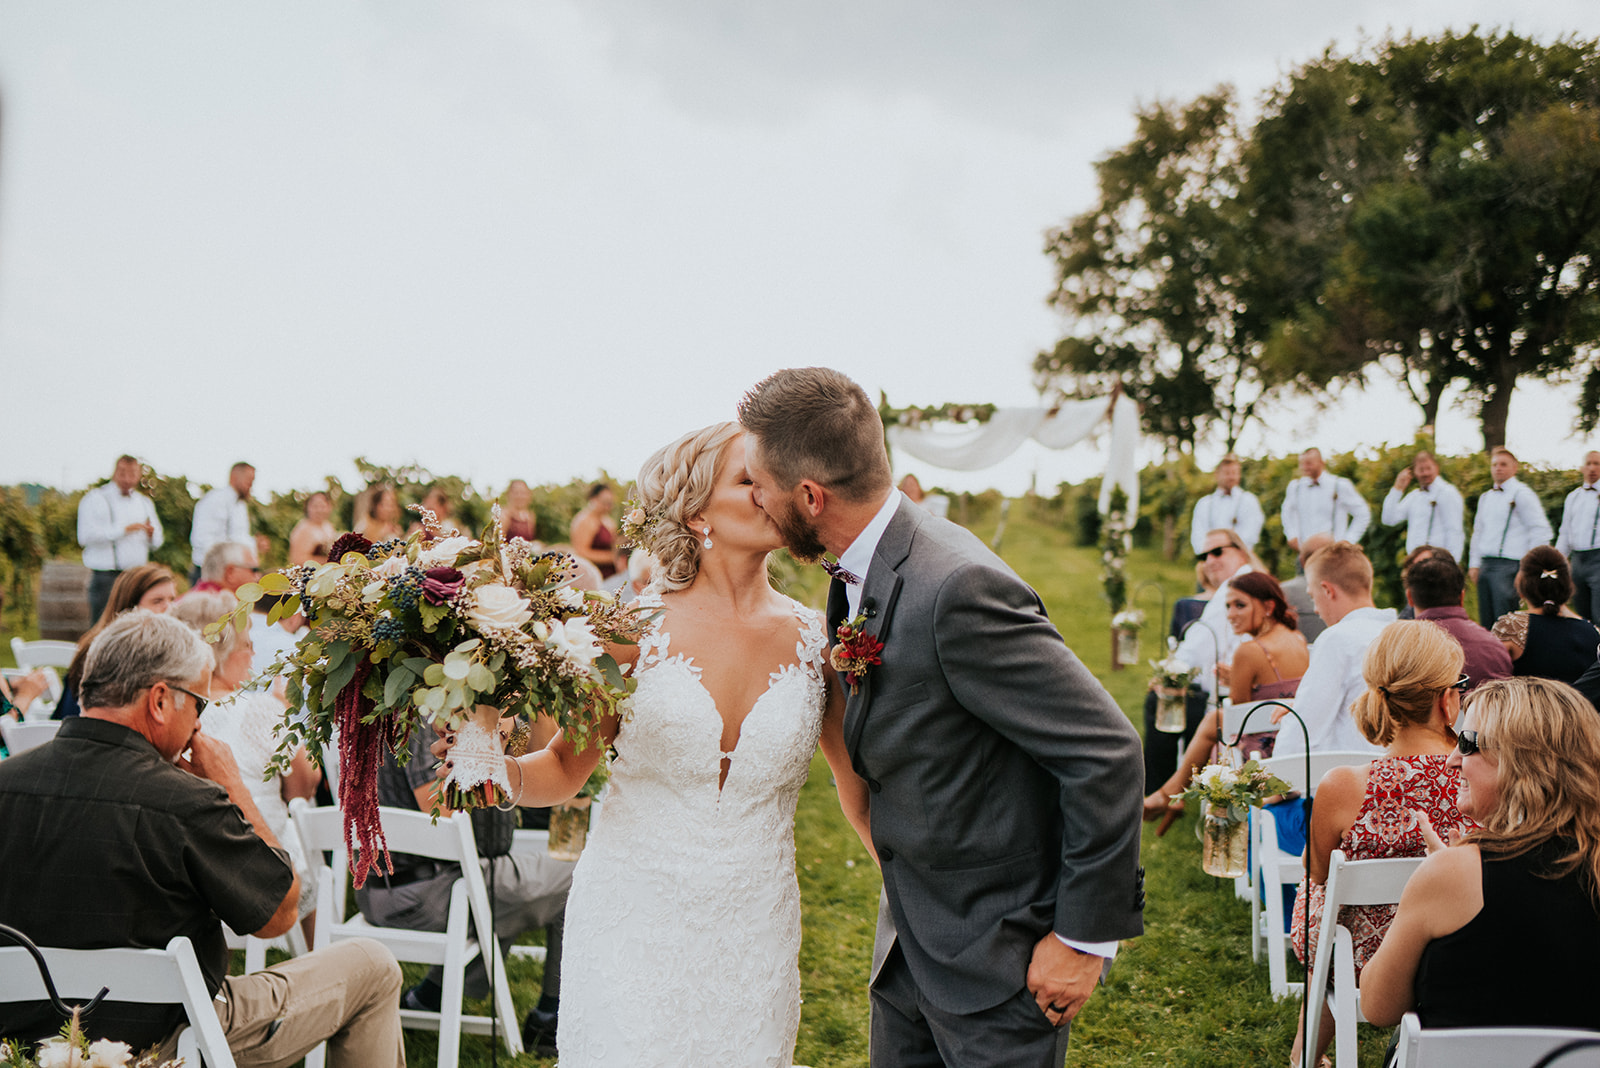 overthevineswisconsinwedding_0695.jpg